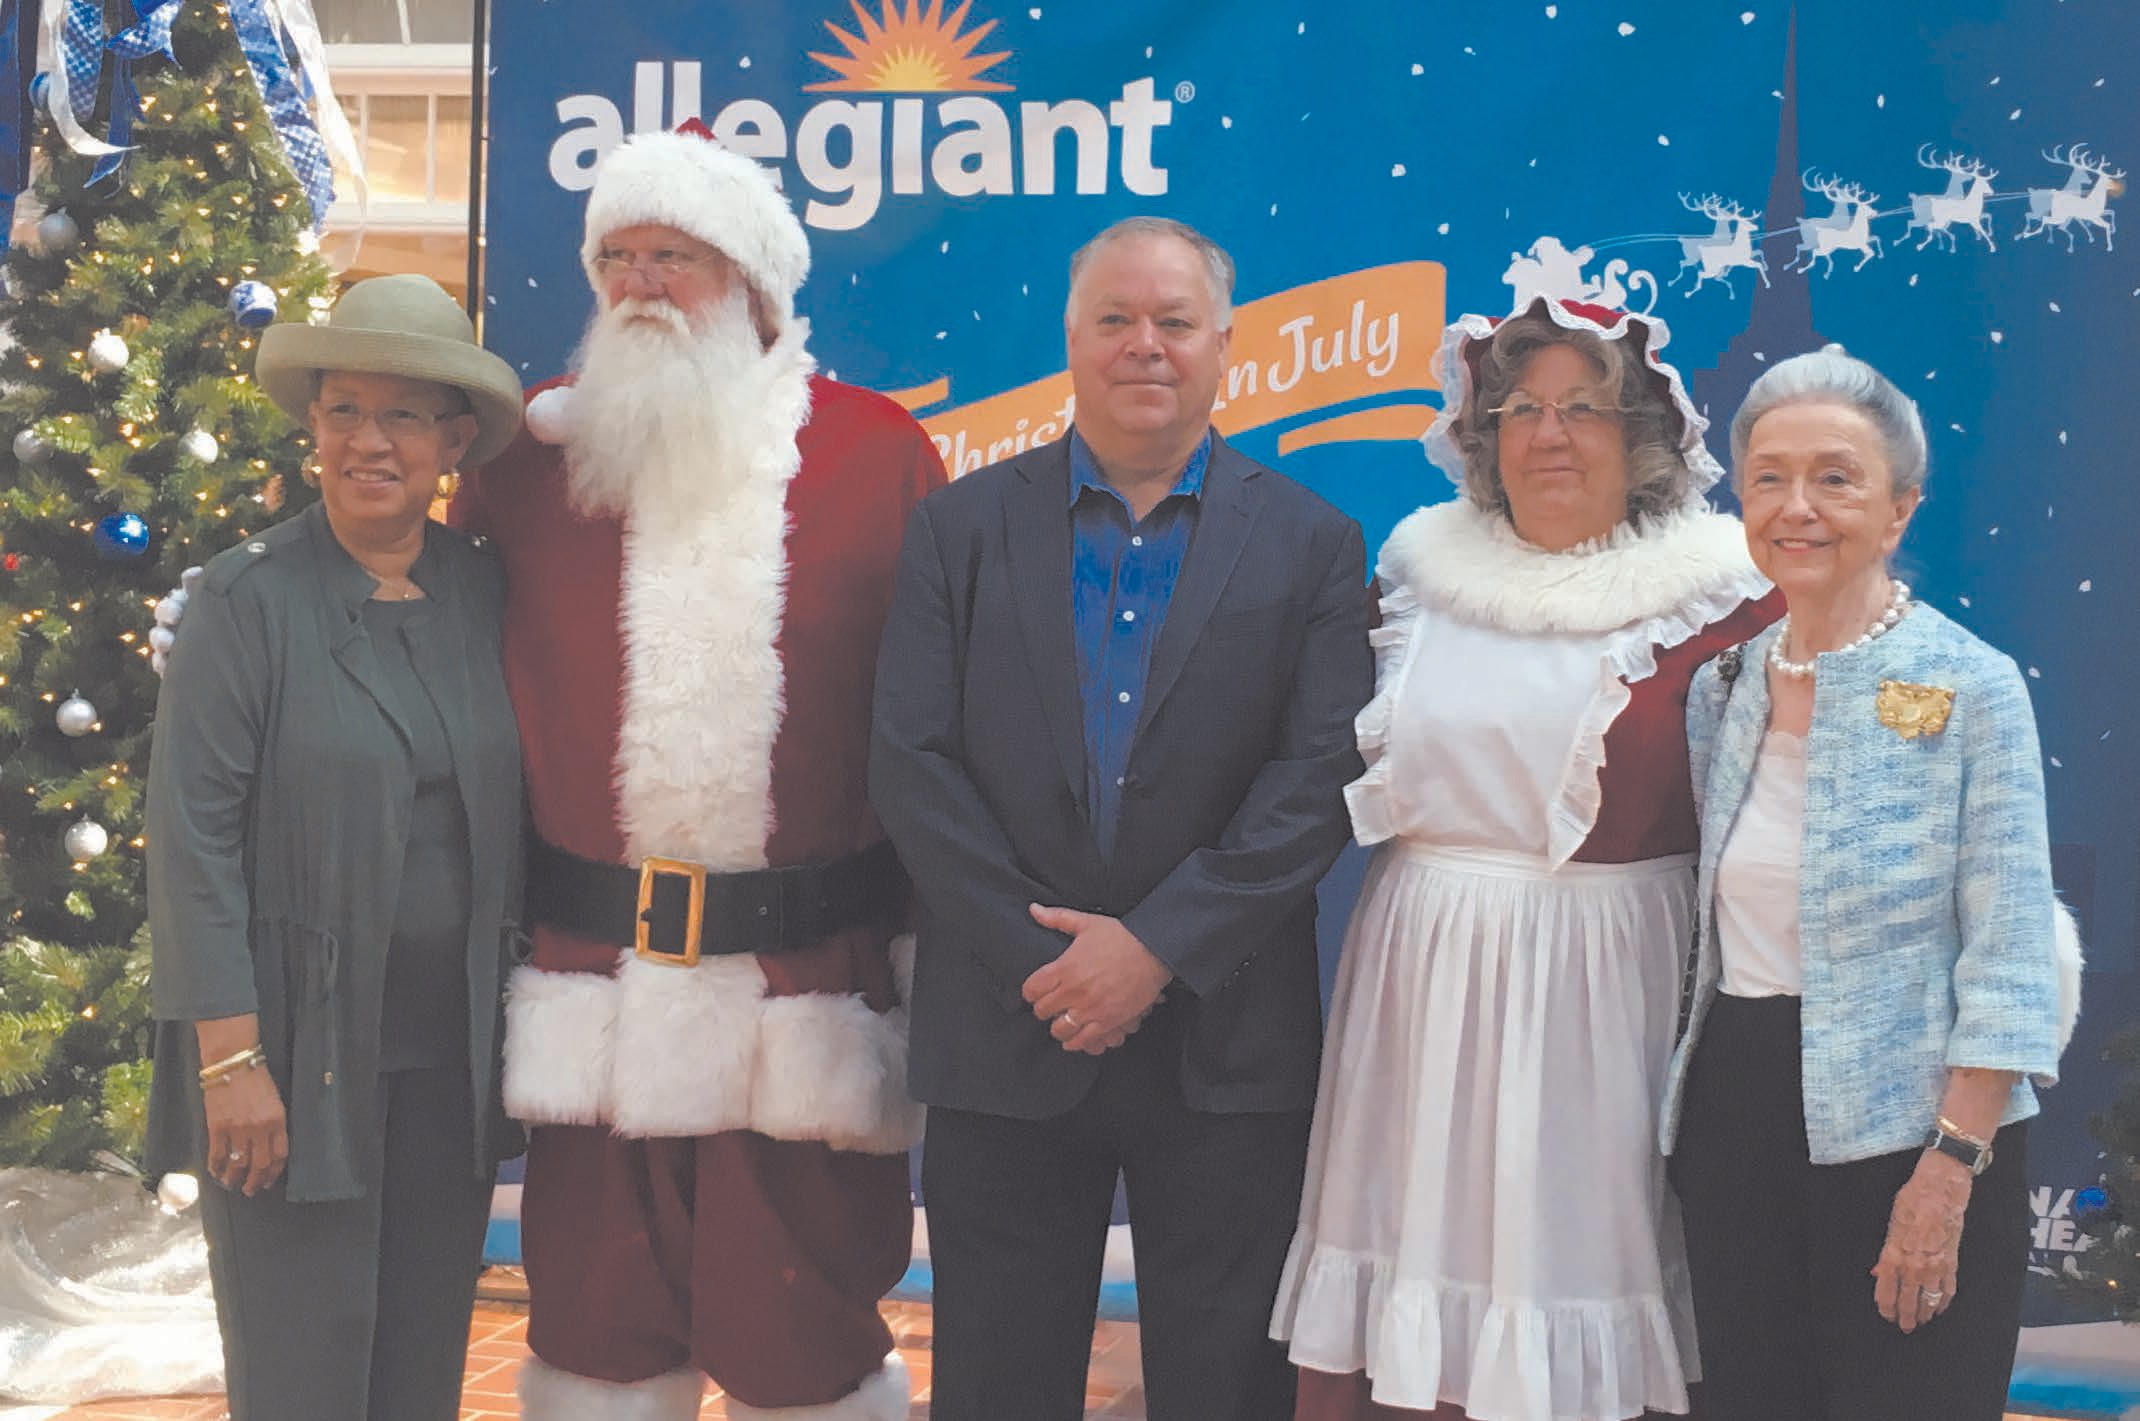 L-R:Savannah Airport Commission Vice-Chairman Shirley B. James, Santa Claus, Savannah Airport Commission Executive Director Gregory B. Kelly, Mrs. Claus, and Savannah Airport Commissioner Lois Wooten.